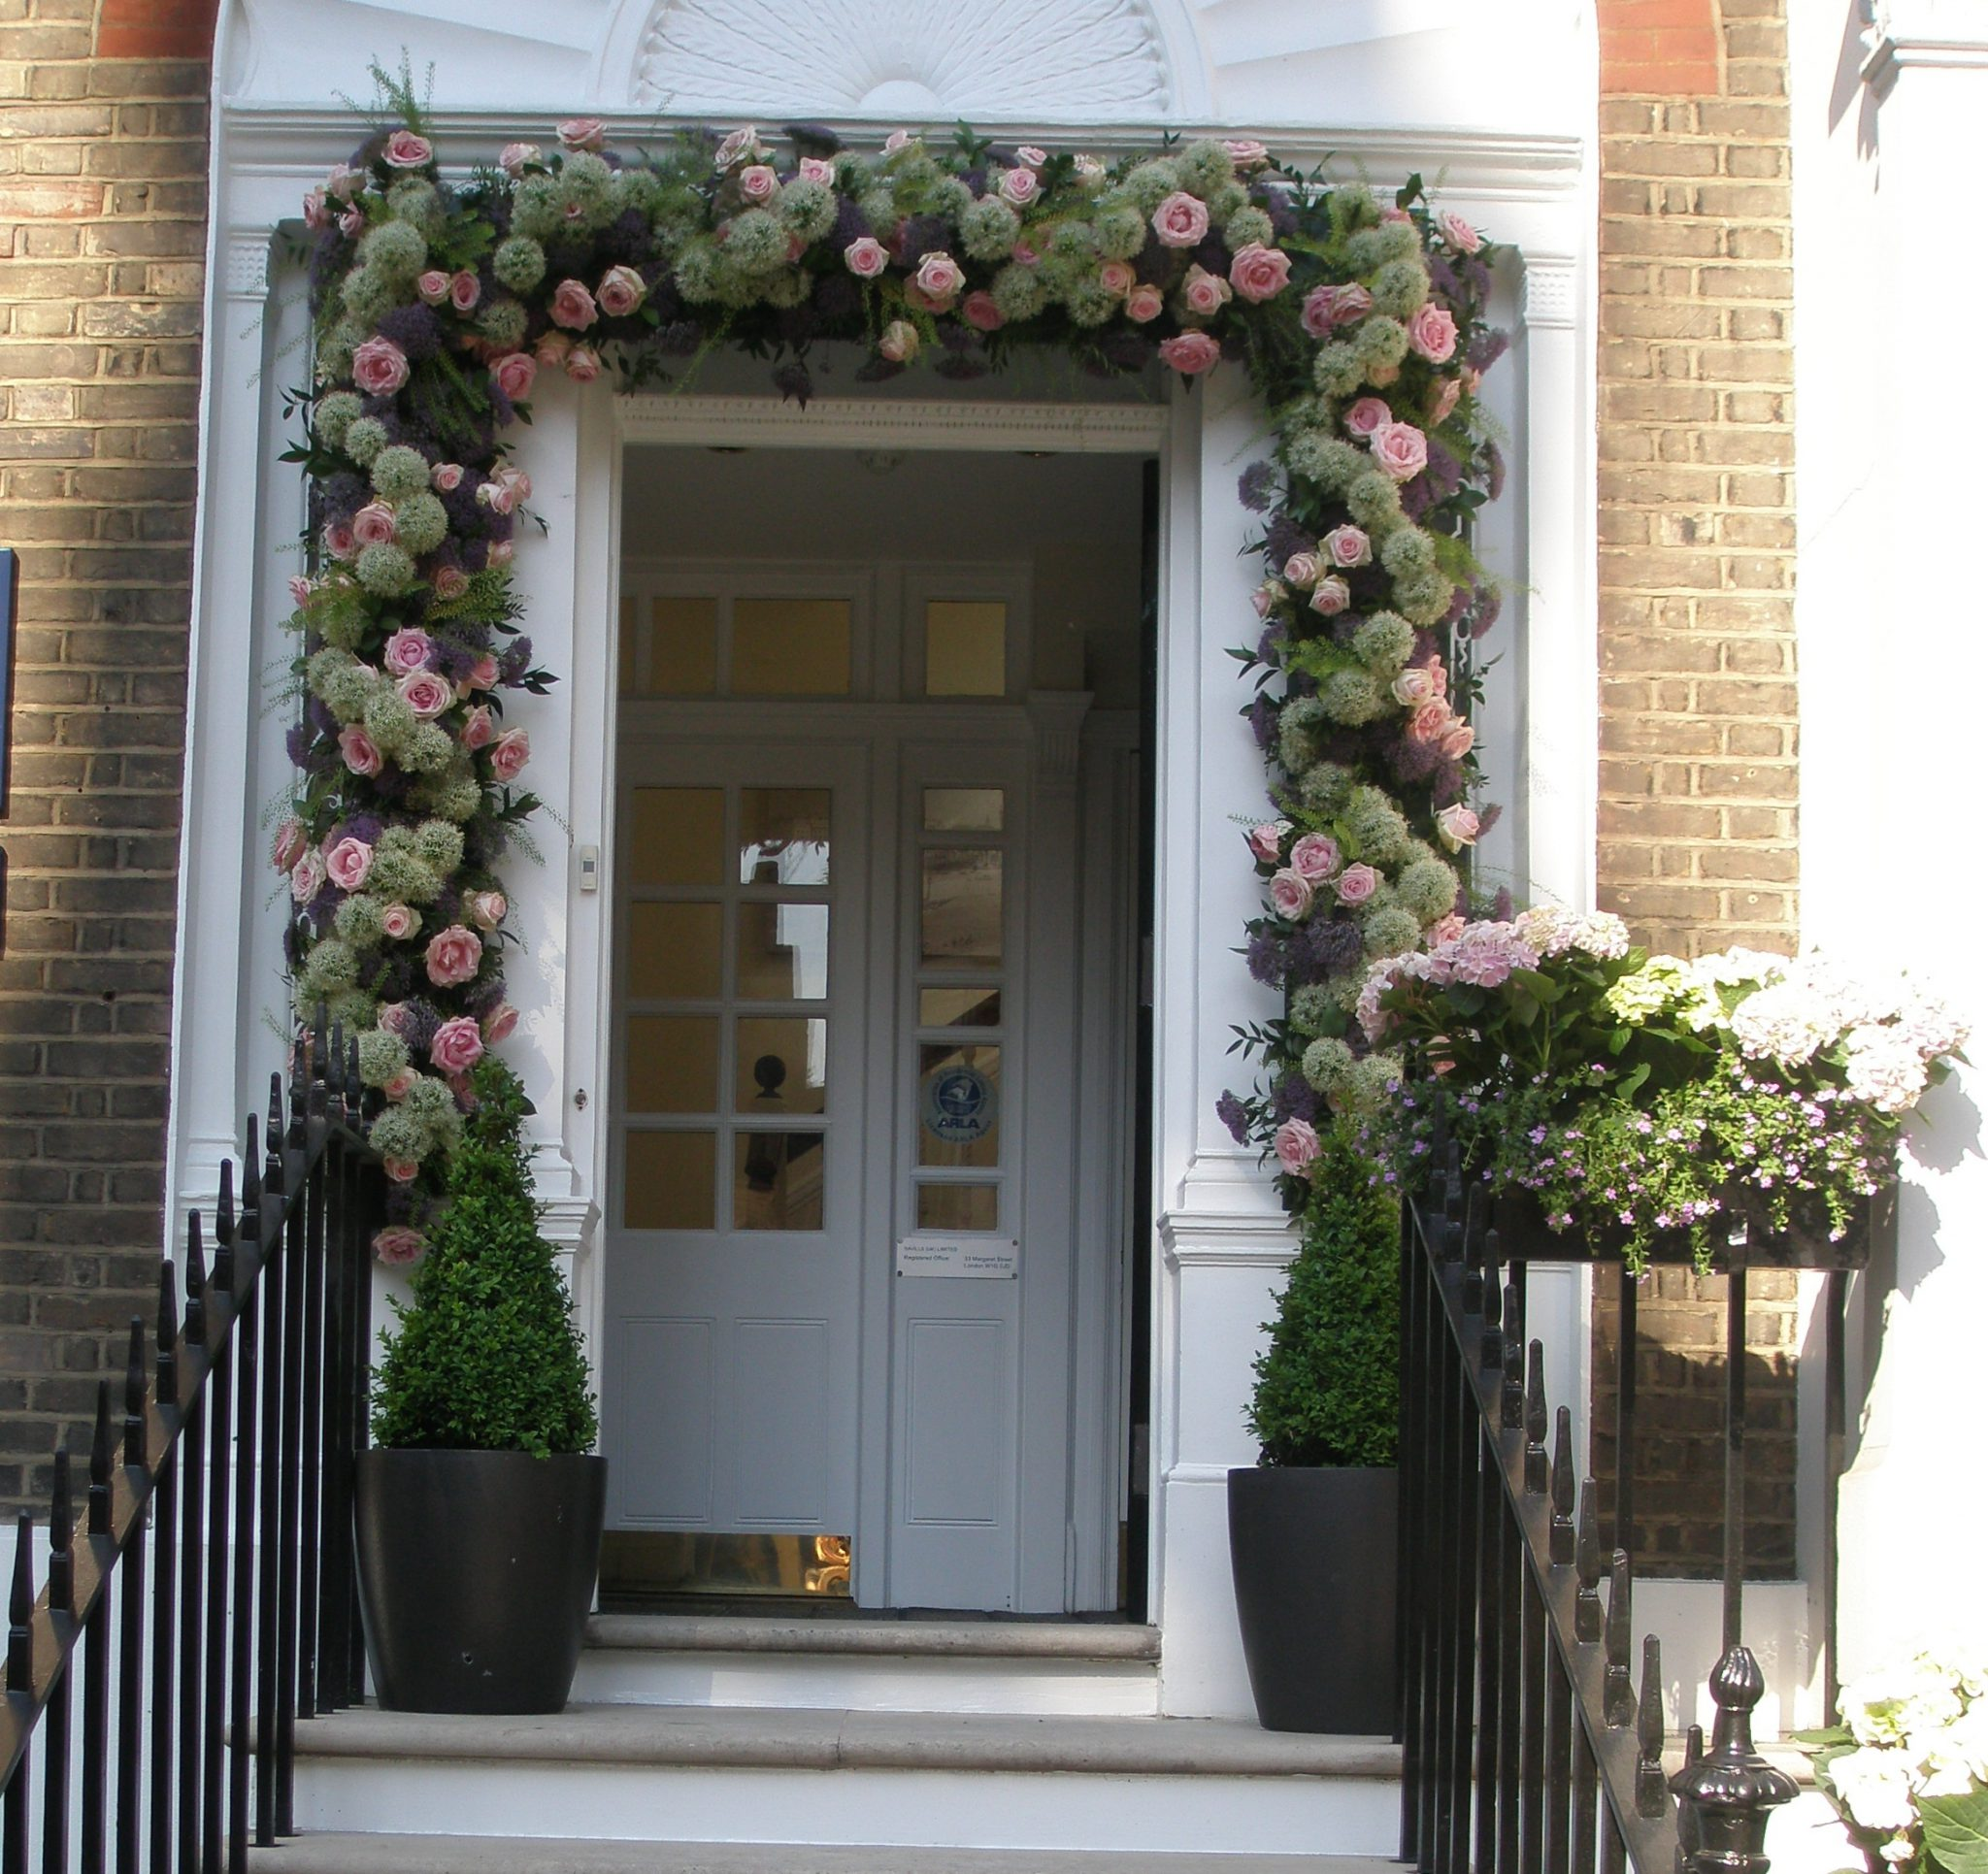 Another doorway, on Sloane Street